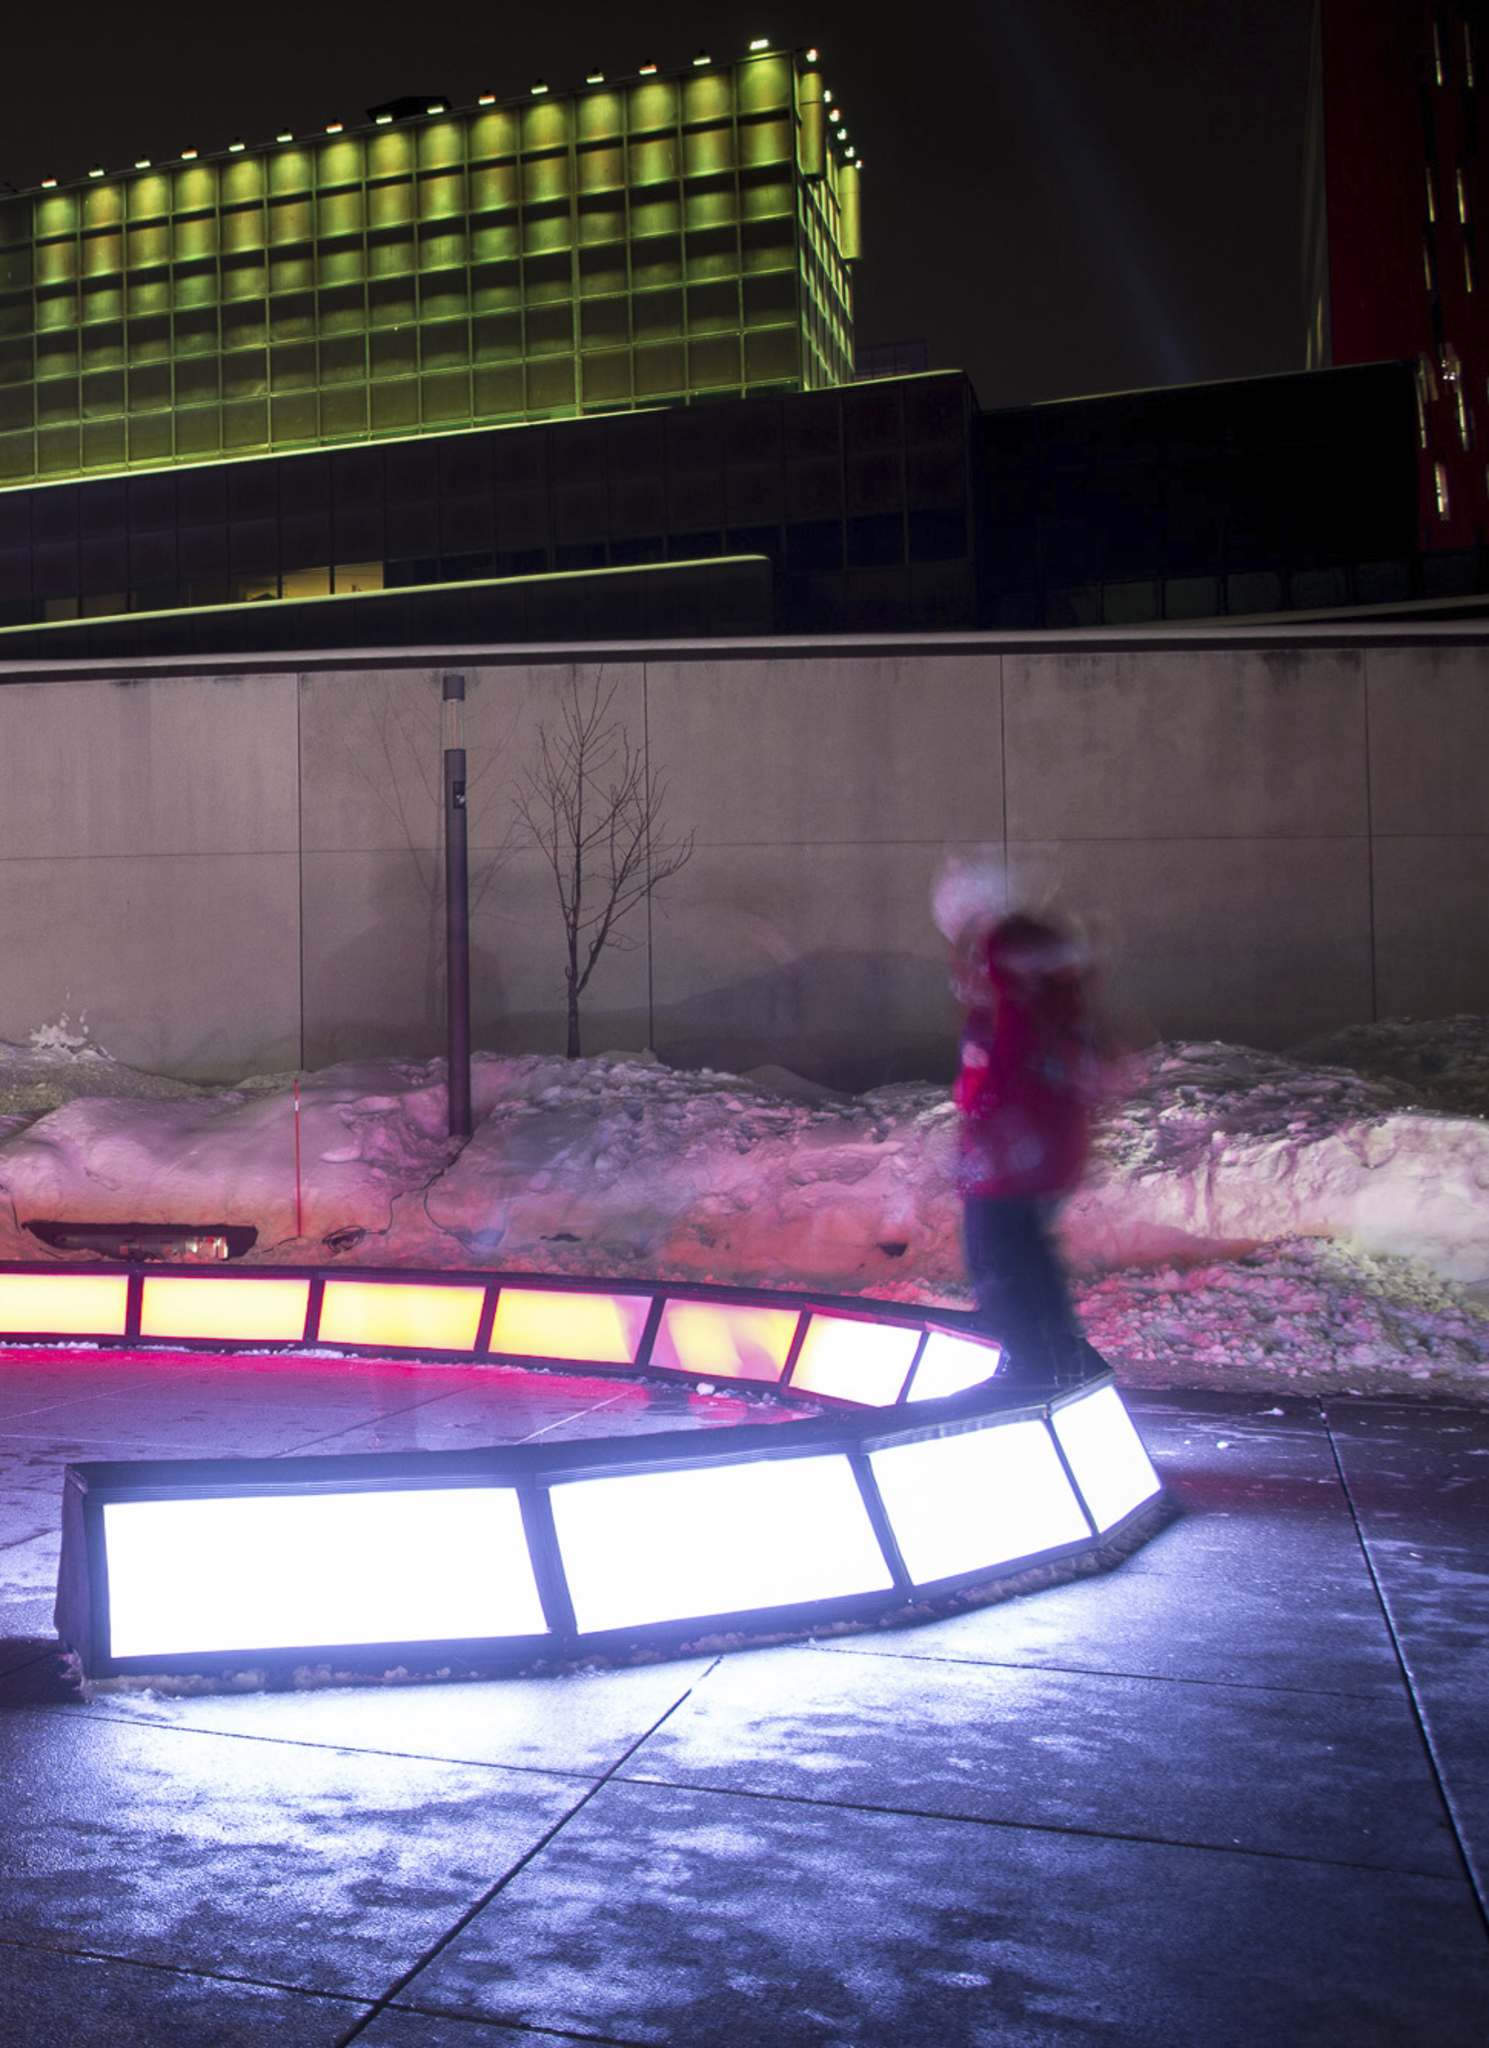 Cycle is one of the featured pop-up public art installations at this year's Nuit Blanche event that can be found at Old Market Square. (Serge Maheu)